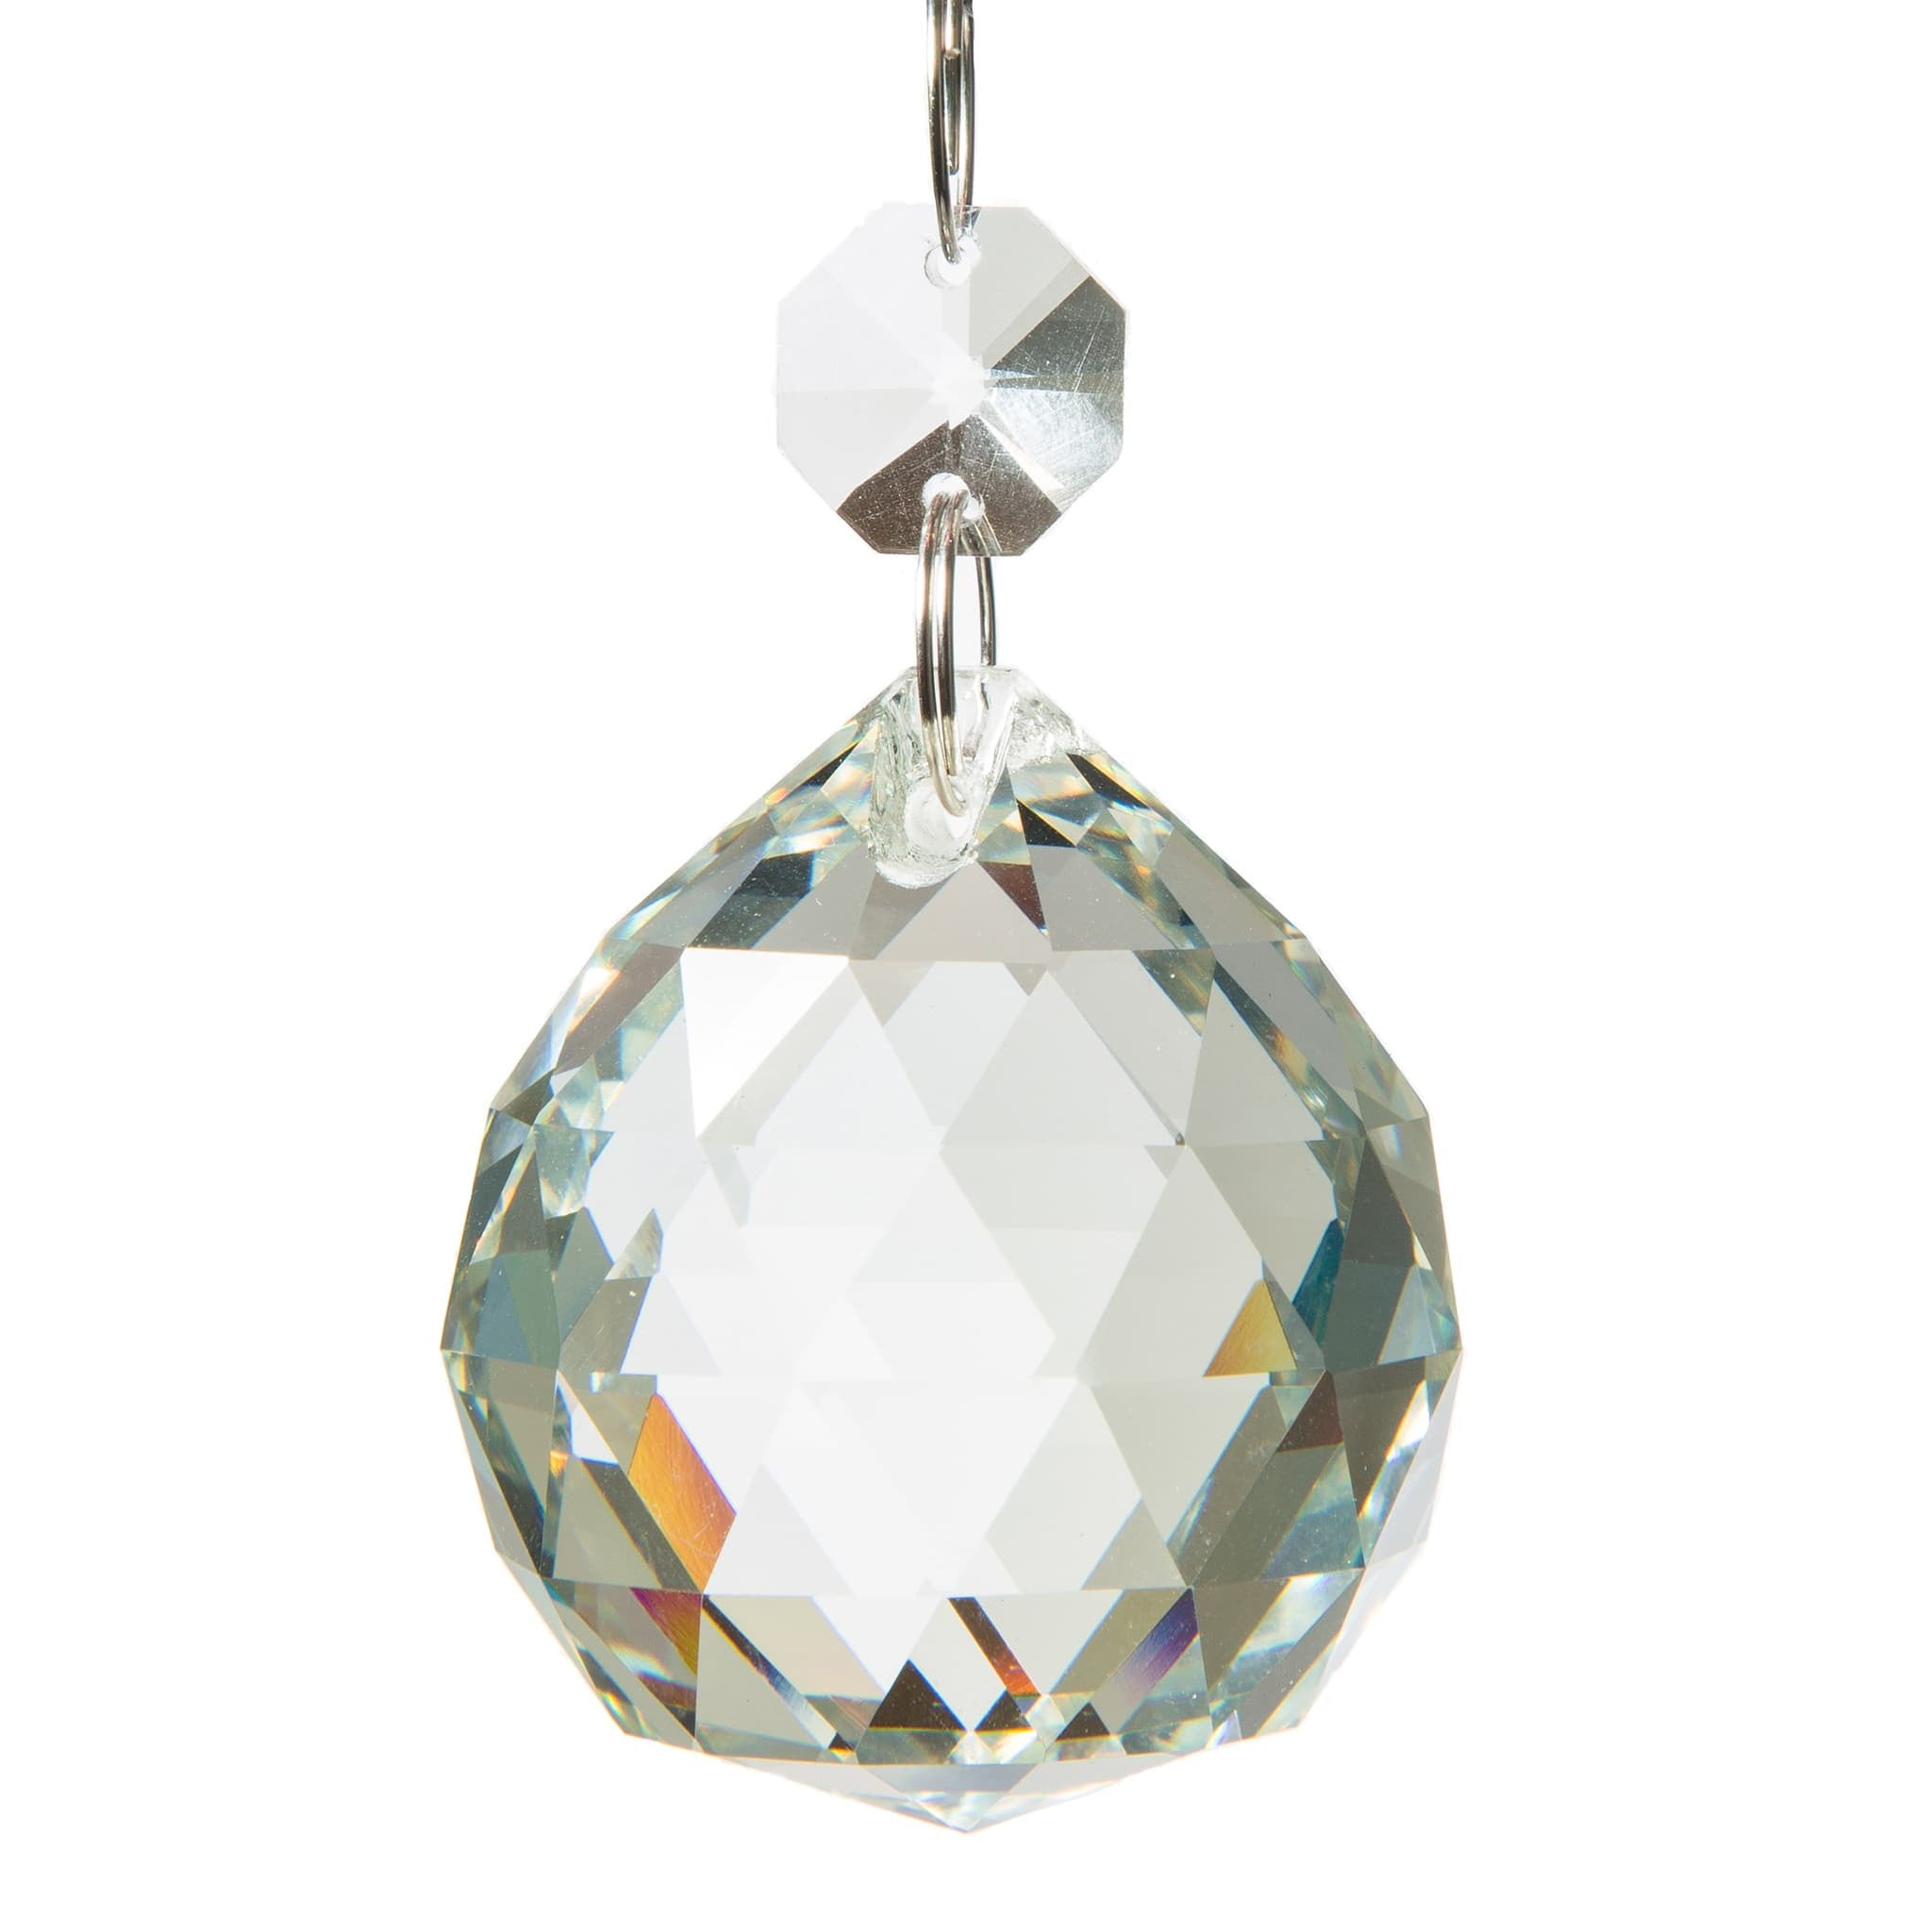 "Amalfi Decor Authentic Glass Chandelier Crystals | 1.5 inch (40mm) Crystal Ball | Set of 5 | 1.5"" W 